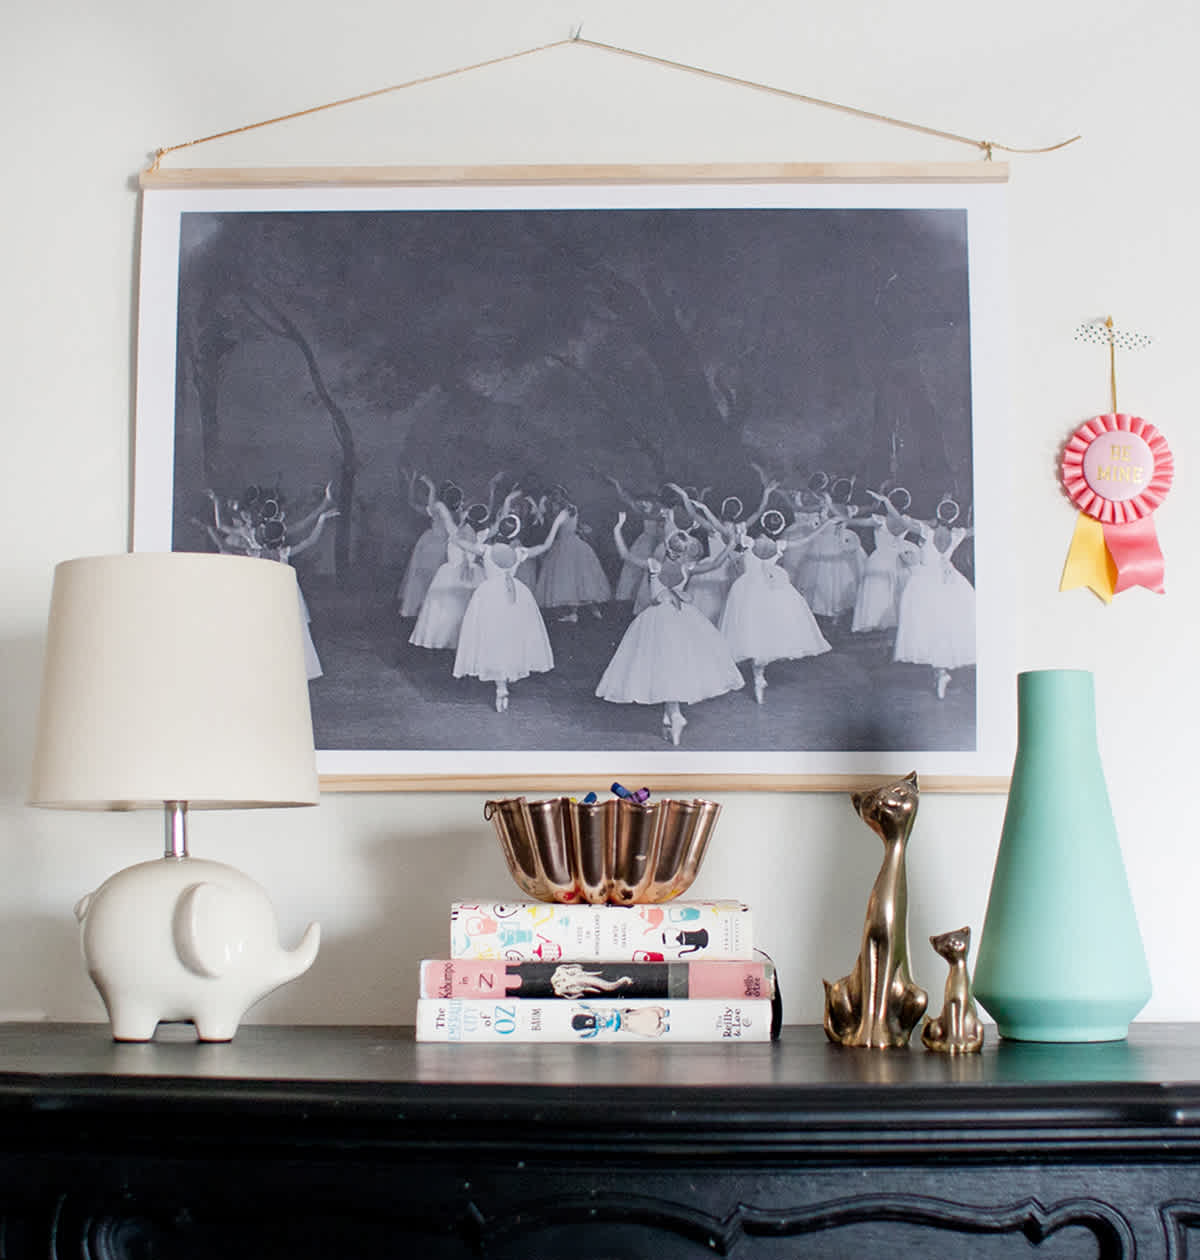 dIY children's room art